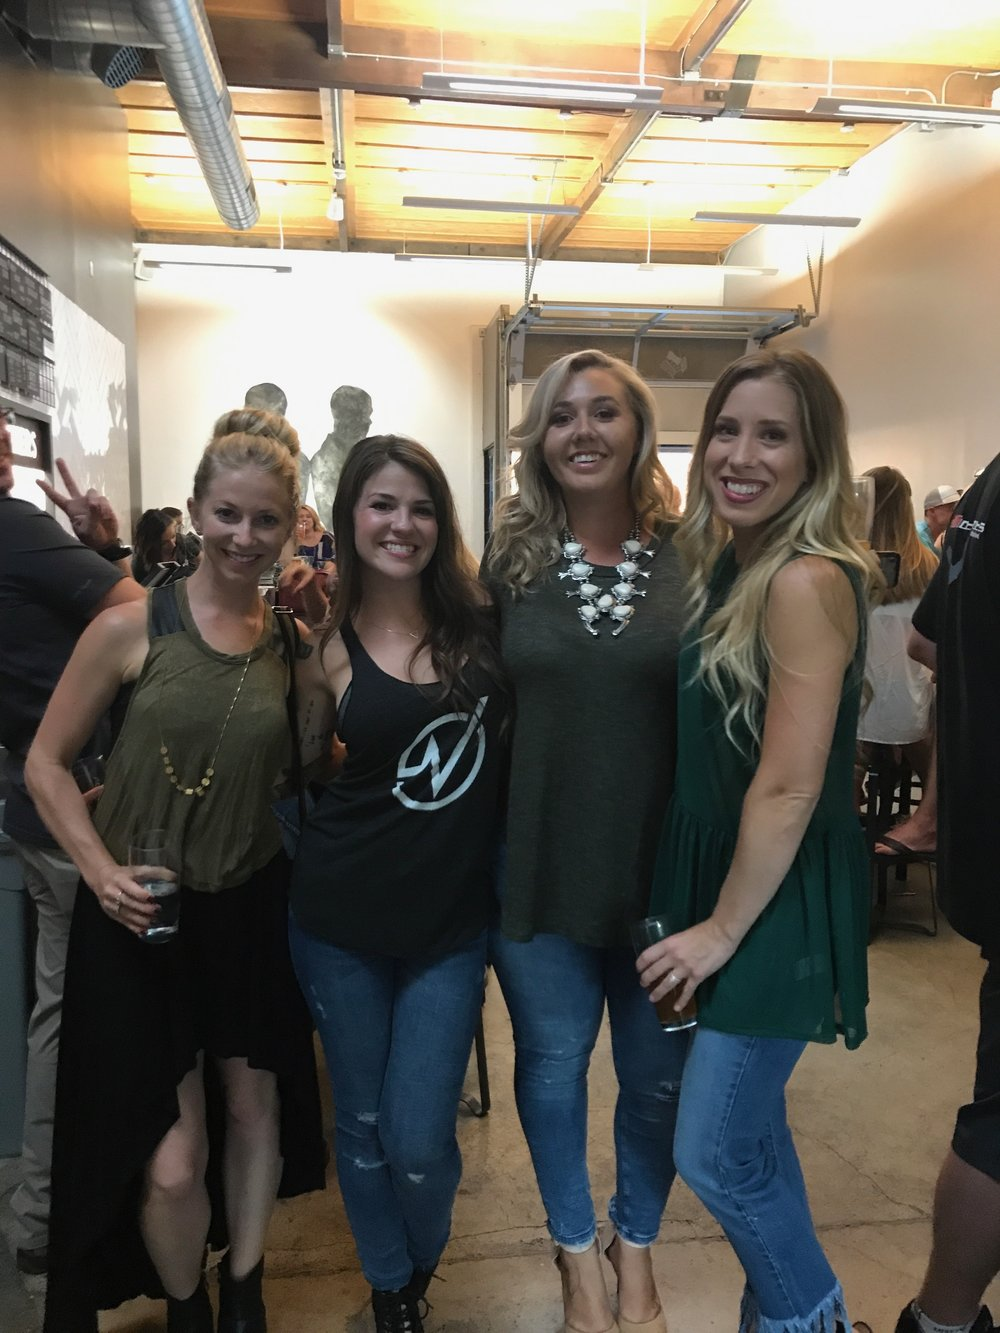 Allie Hobson of Barefood Nutrition, Brittney - founder of Virago Fitness, Chanel of Dames Collective, Megan of Virago Fitness